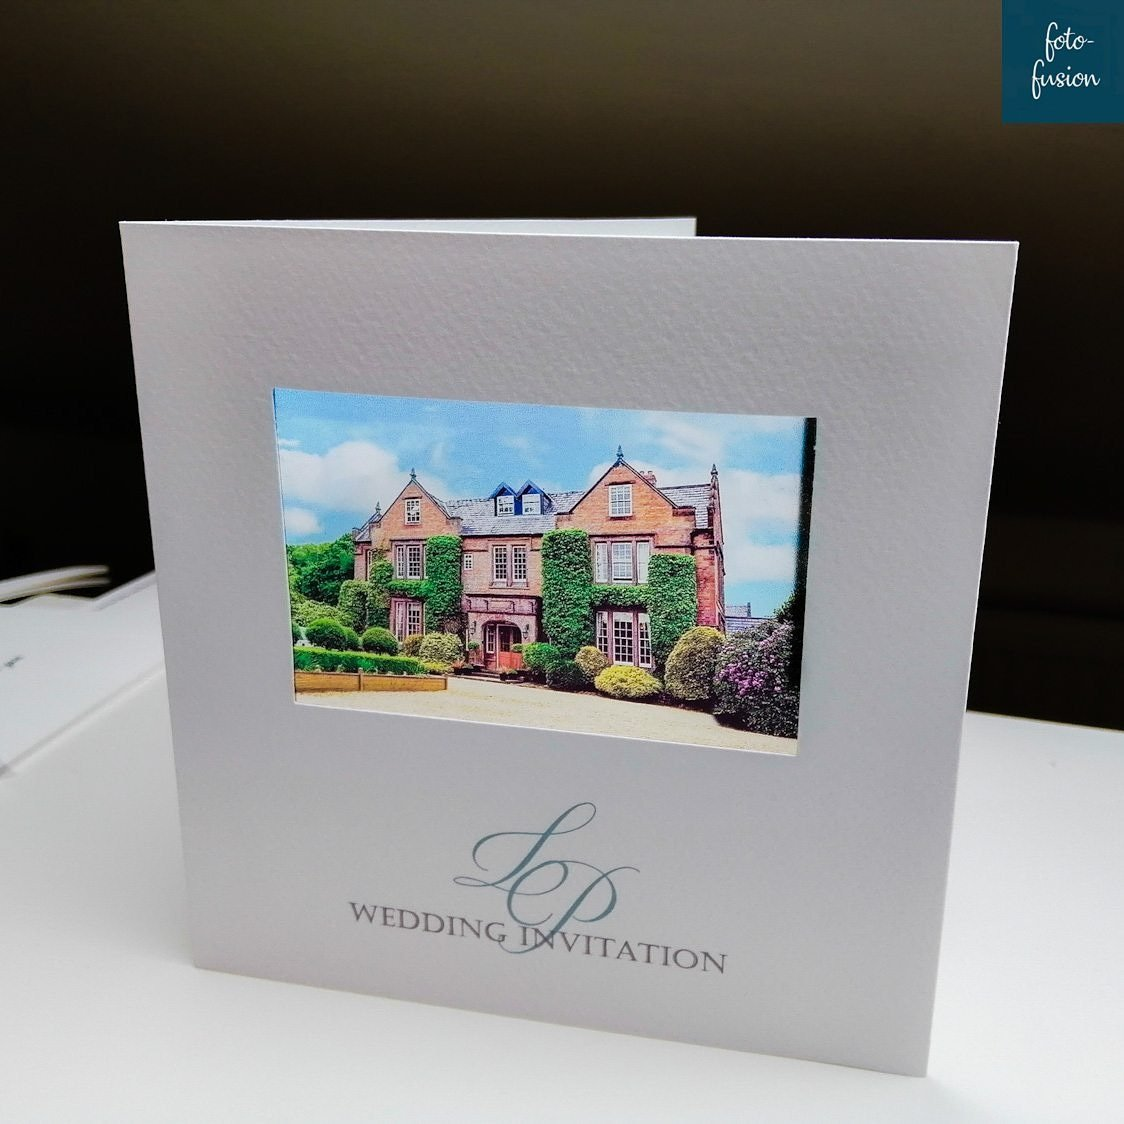 Wedding stationery bespokely made by foto-fusion